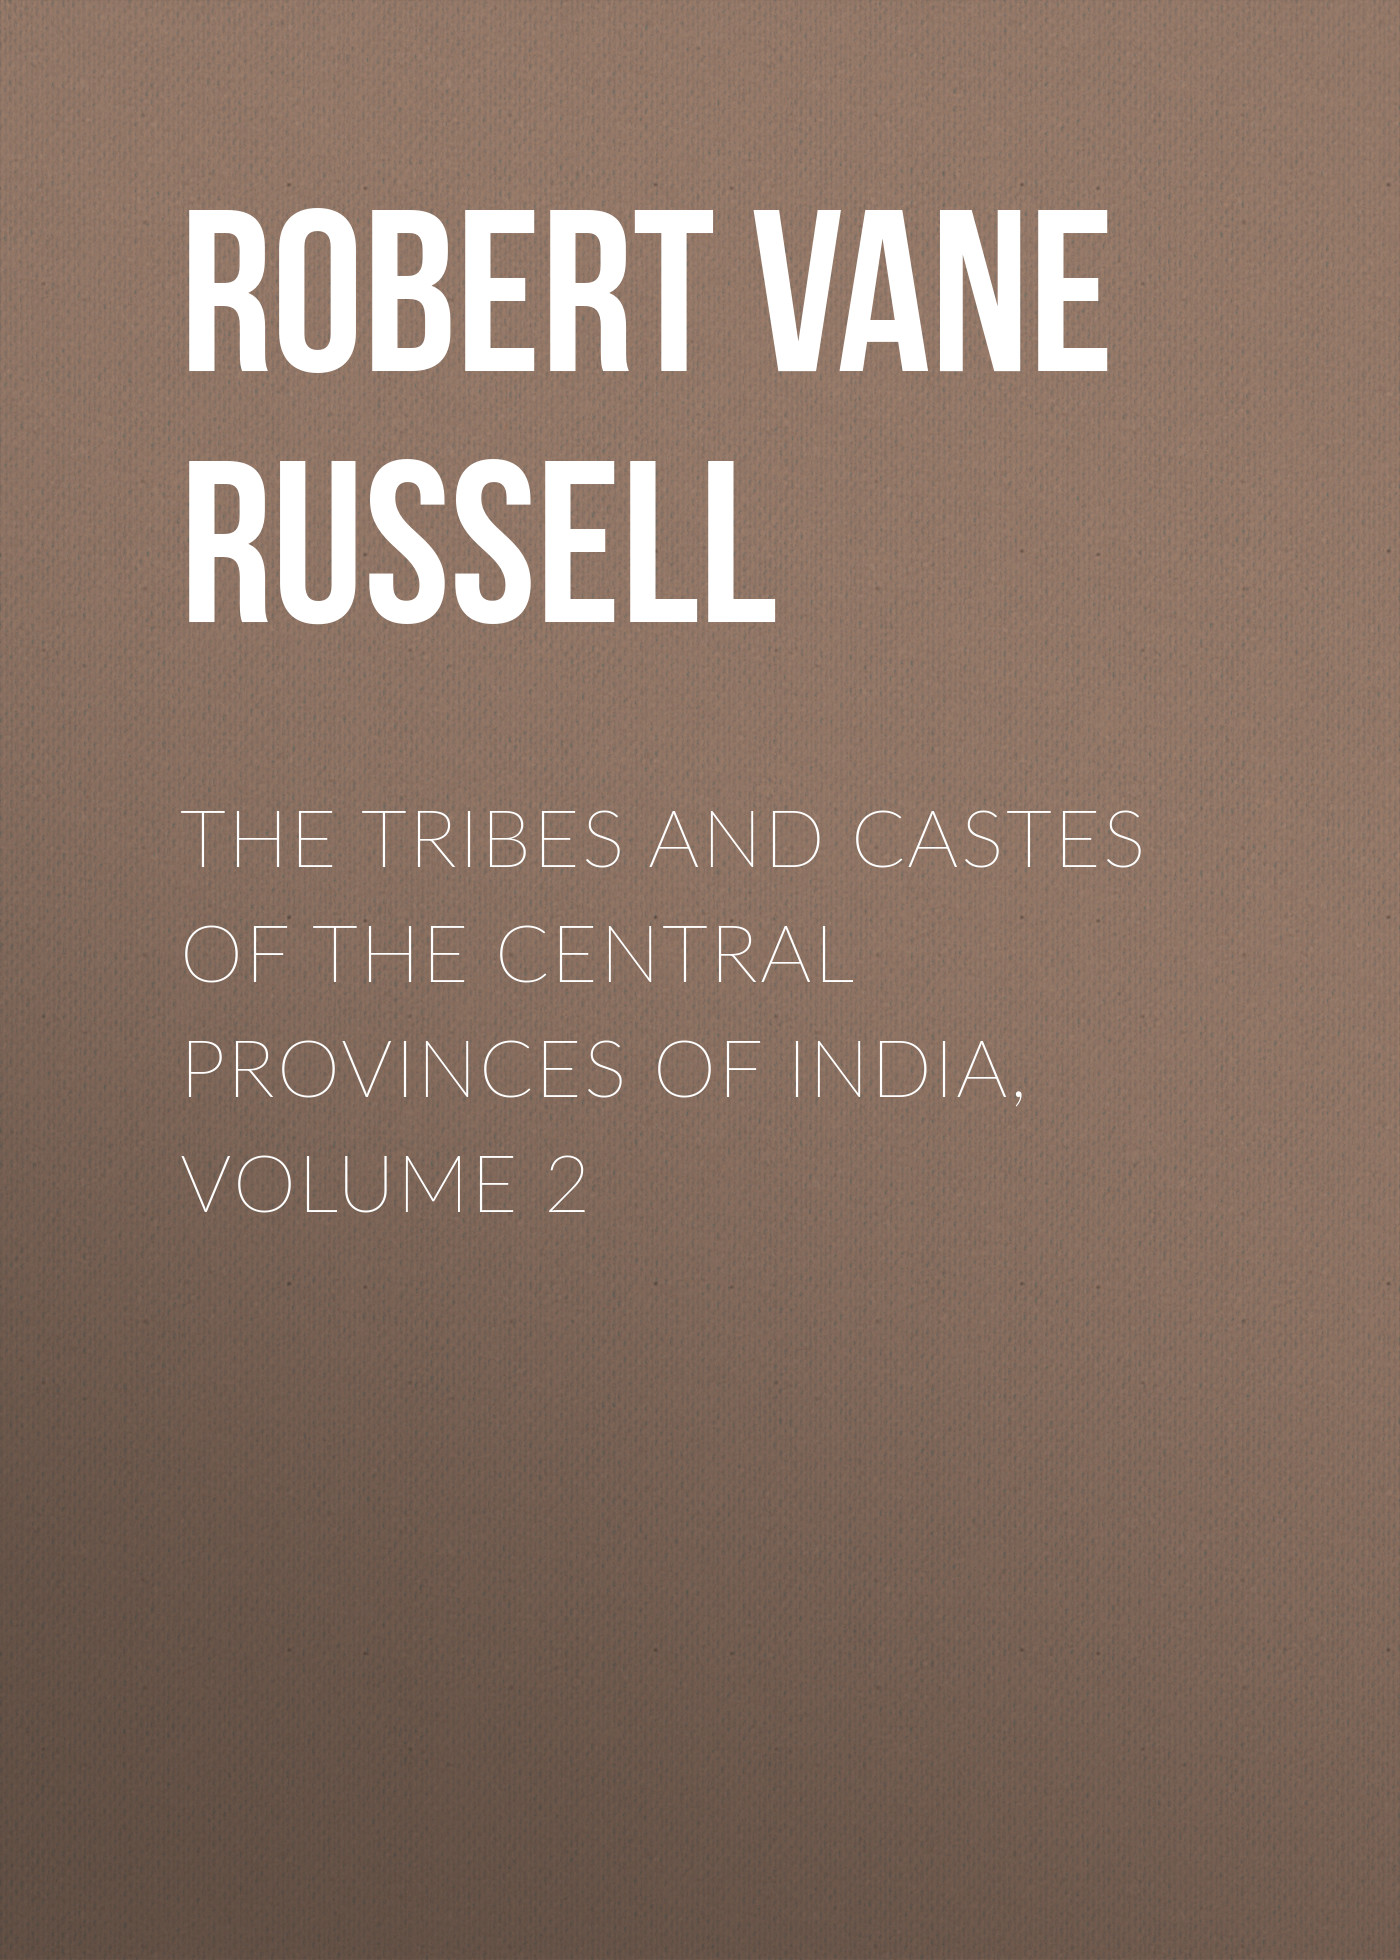 Robert Vane Russell The Tribes and Castes of the Central Provinces of India, Volume 2